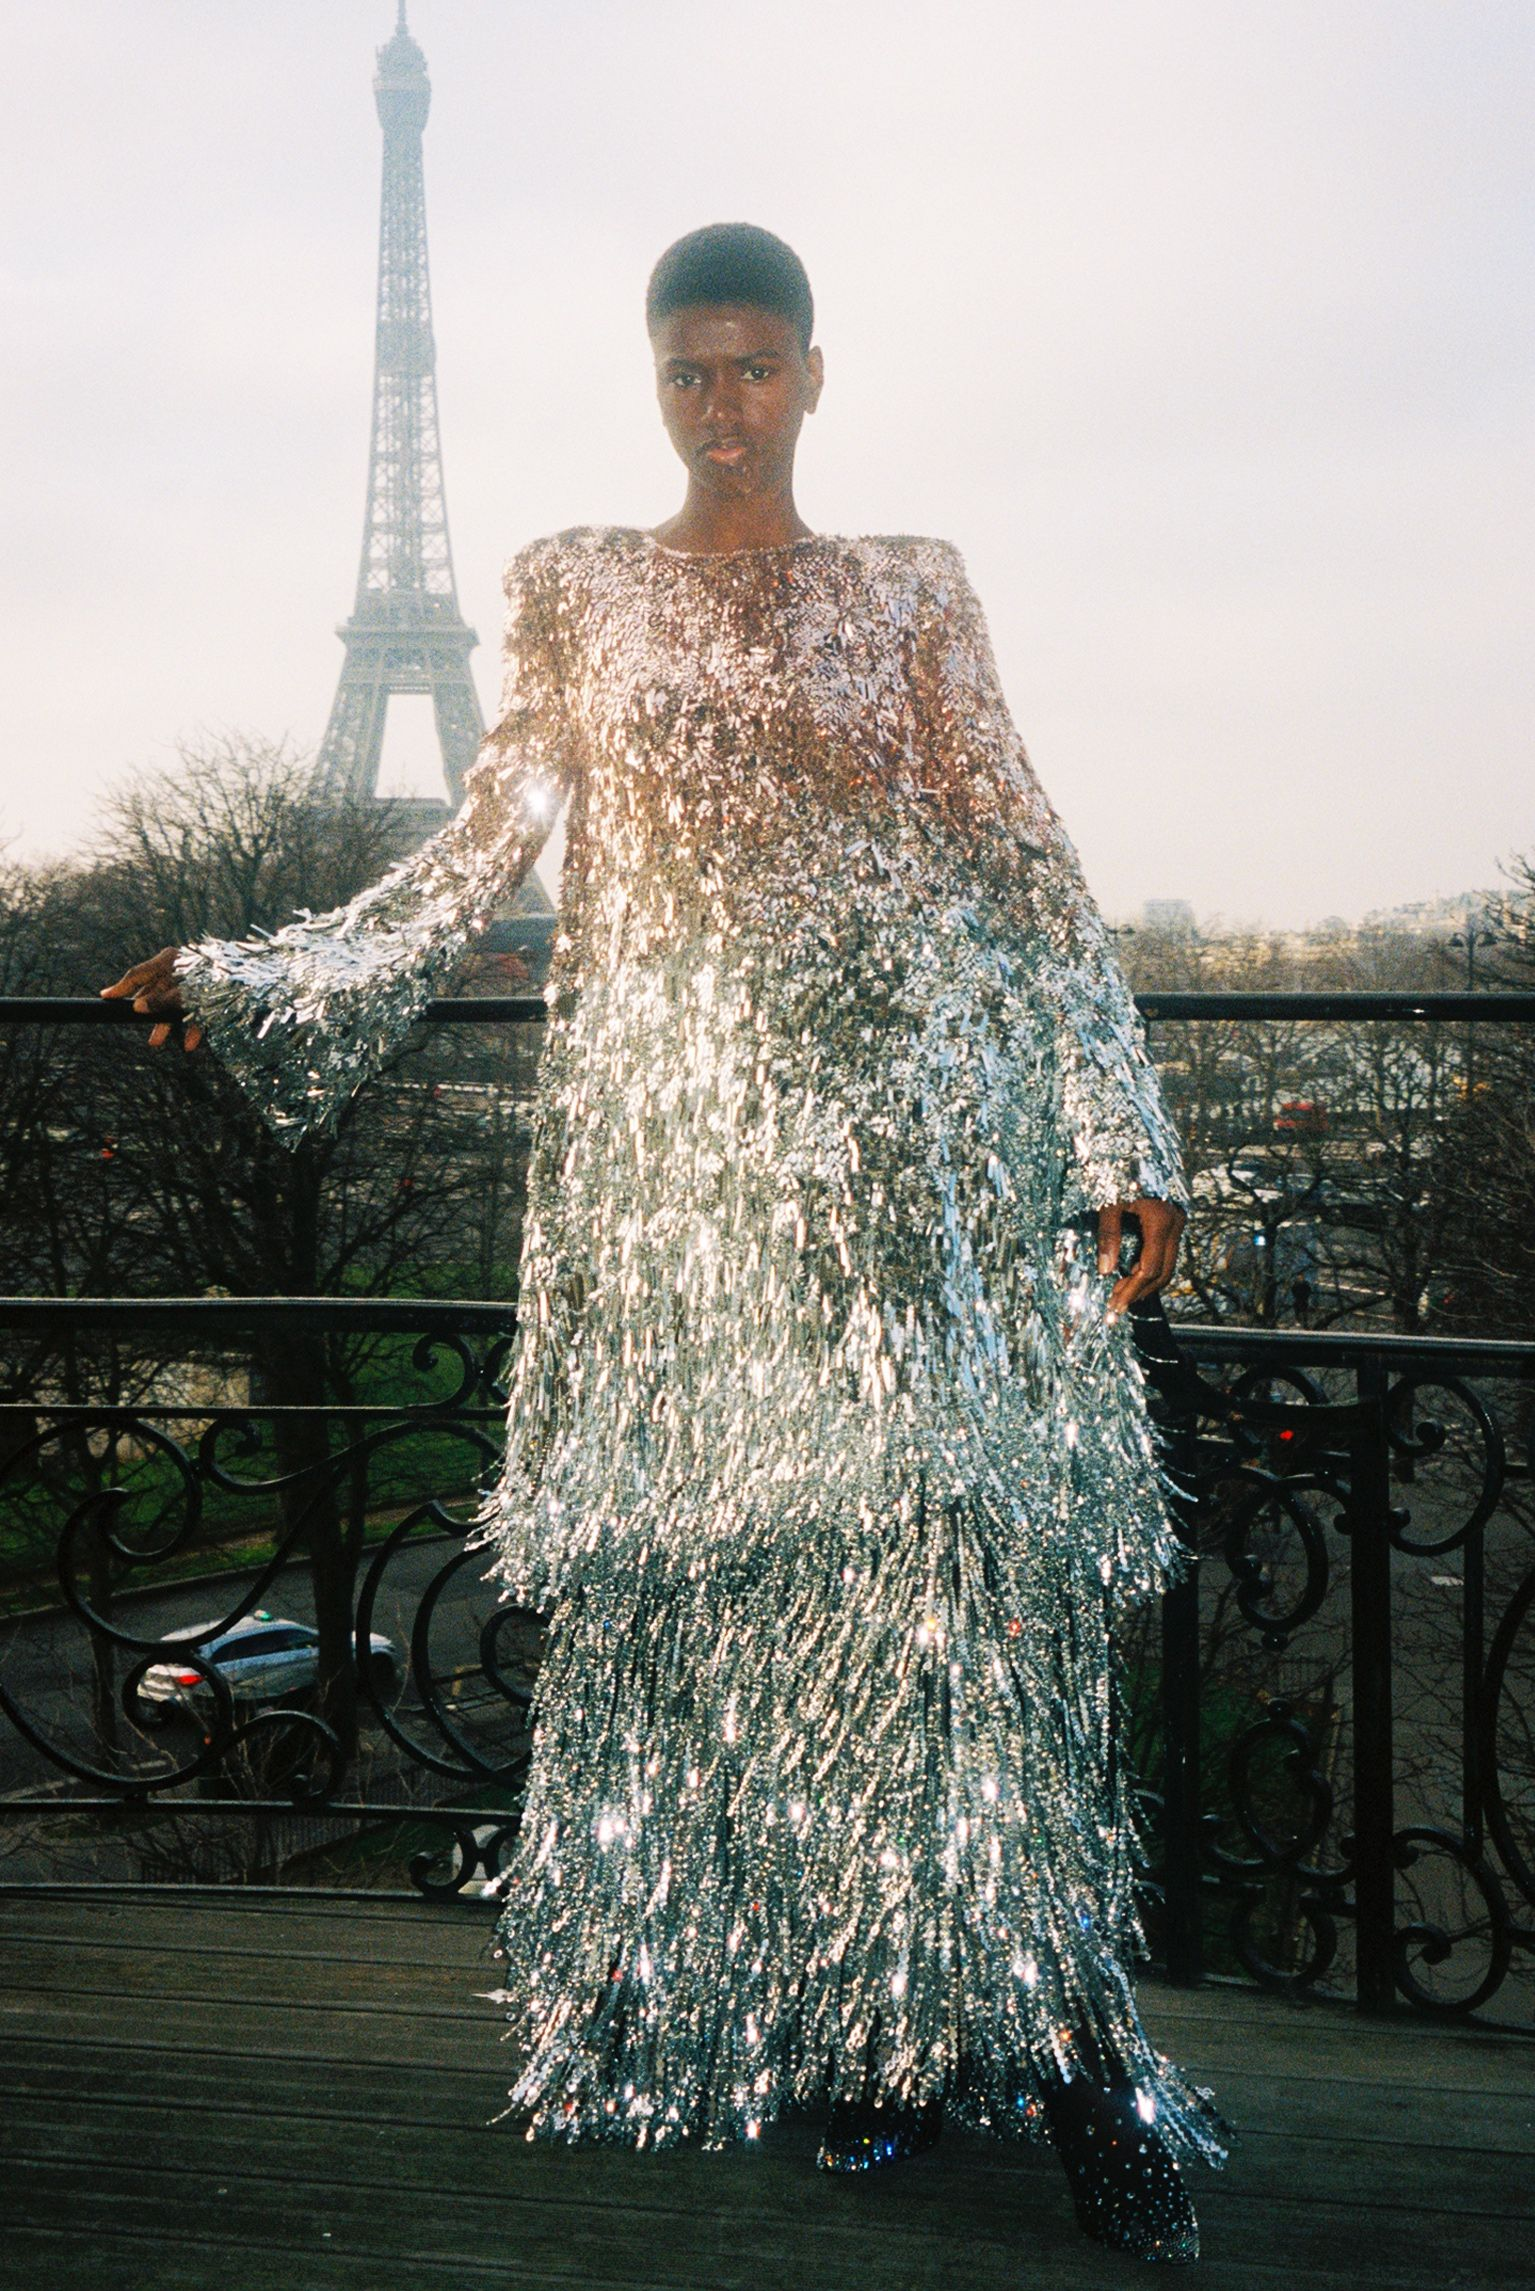 A Paris Promenade for Haute Couture Spring/Summer 2020